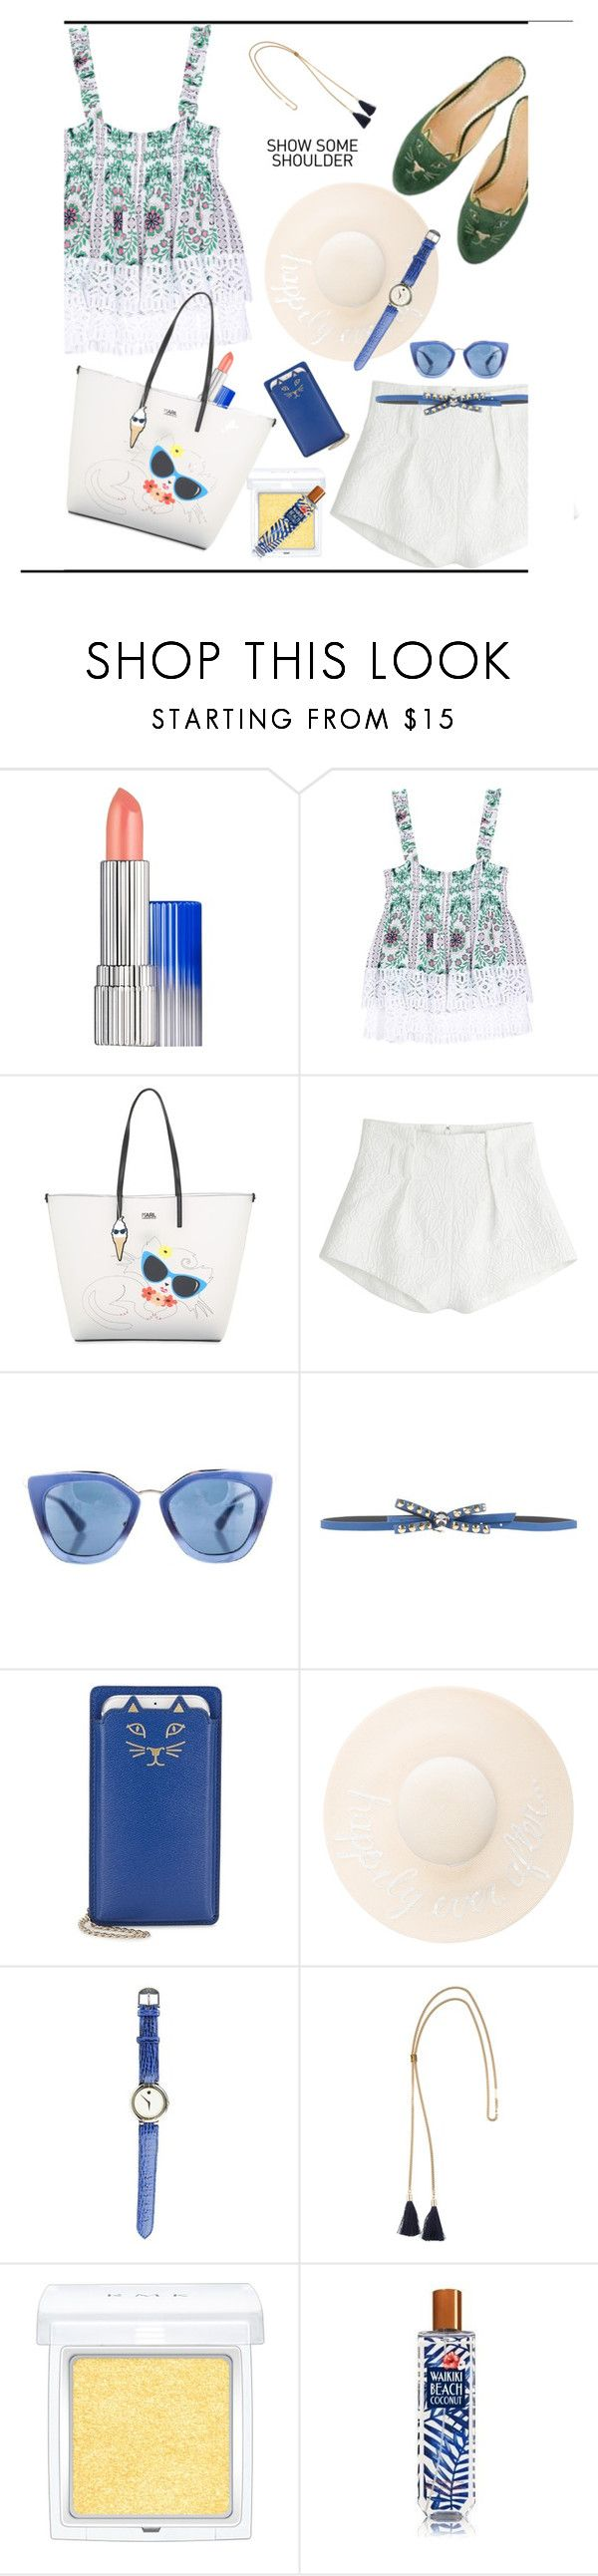 """Shimmy, Shimmy: Off-Shoulder Tops♥♥♥"" by marthalux ❤ liked on Polyvore featuring Estée Lauder, Tory Burch, Karl Lagerfeld, Mary Katrantzou, Prada, Argento Antico, Charlotte Olympia, Eugenia Kim, Movado and Chloé"